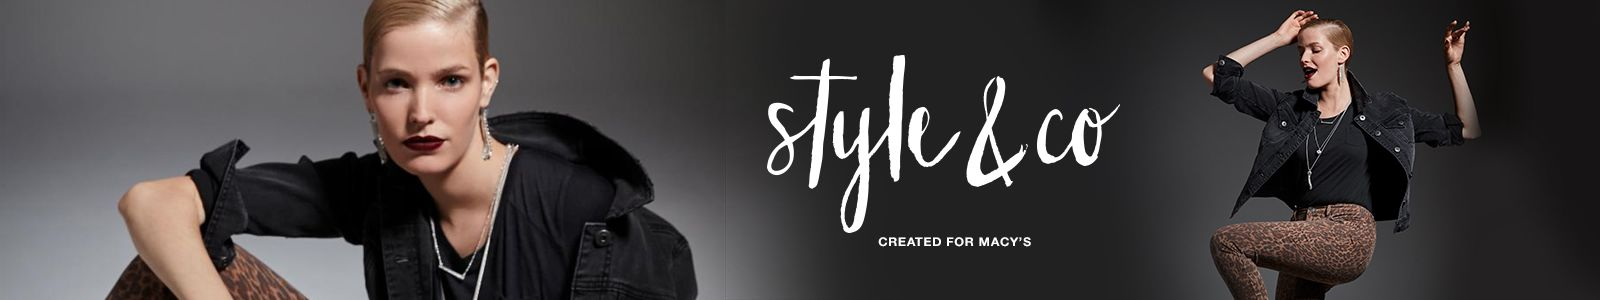 Style and co, Created for Macys